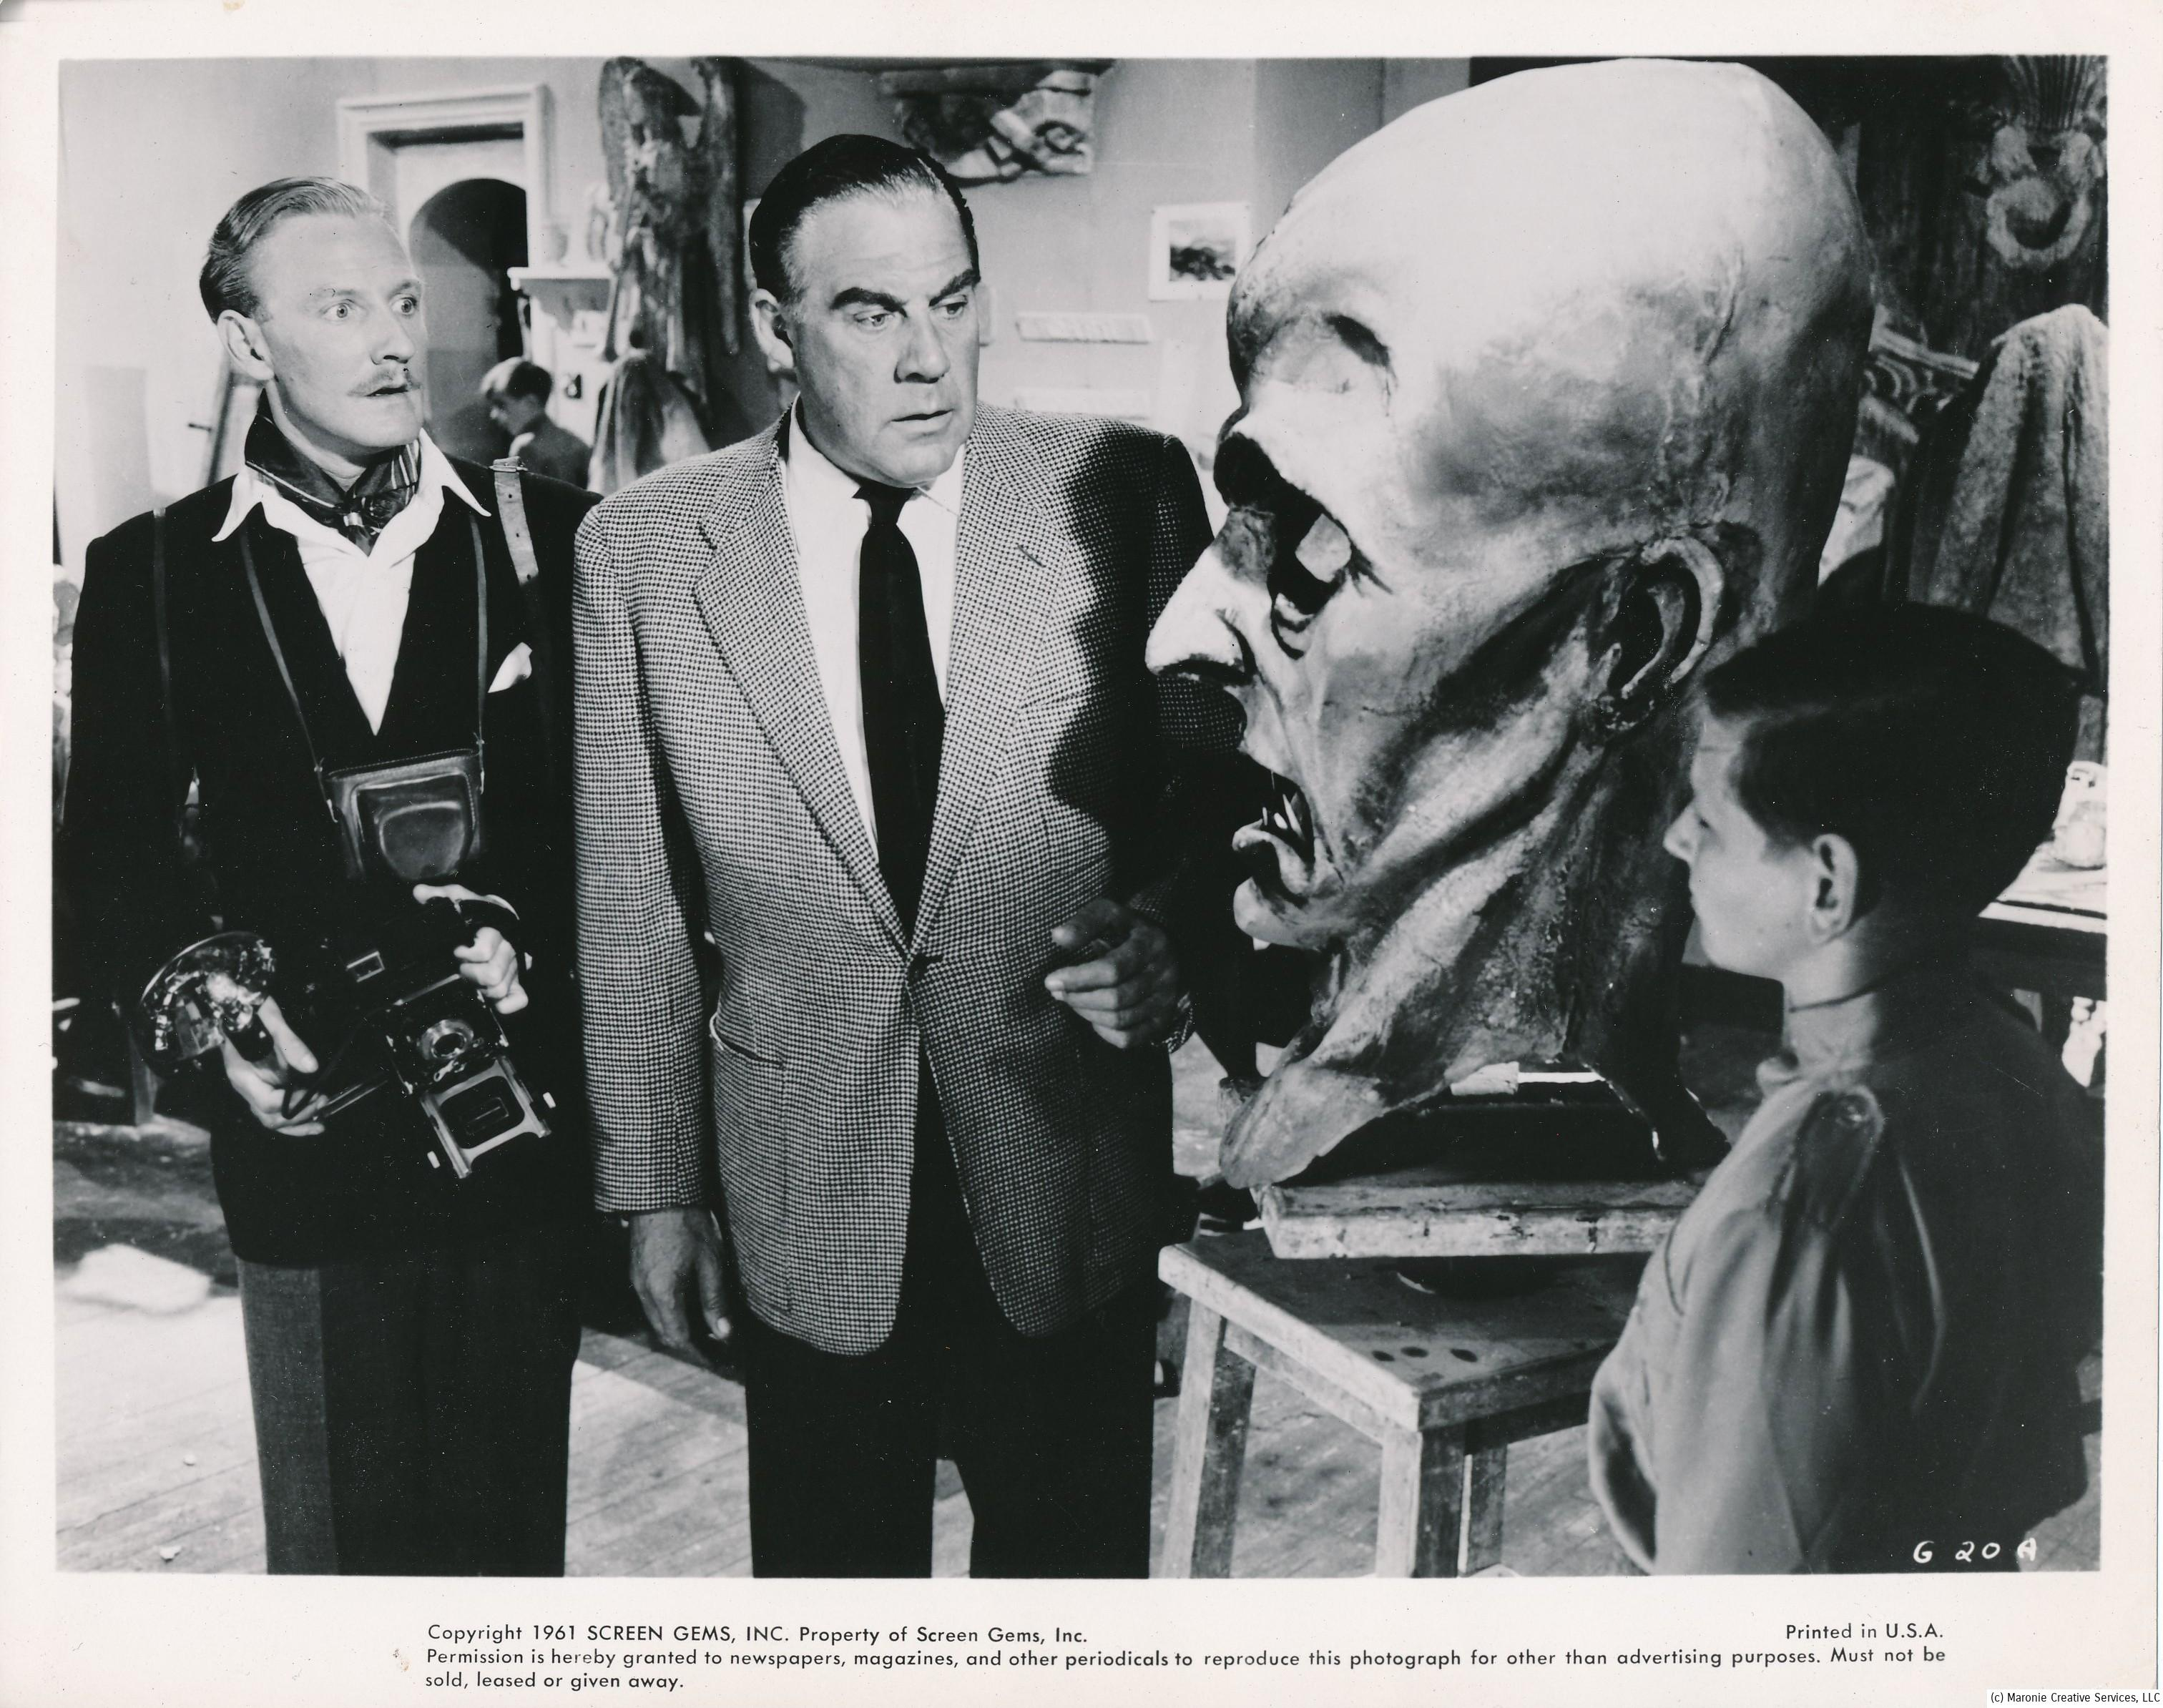 The Gamma People (1954), was a weird sci-fi opus lensed in Germany. The feature starred Paul Douglas (in suit) as an American reporter who stumbles on to an evil experiment. Believe it or not, Douglas was a big star in the 1950s. He was certainly no Clark Gable, but somehow audiences responded to his rough-hewn exterior. He excelled at portraying gangsters, thugs, and other such knuckleheads. His best-known films are A Letter to Three Wives, the original Angels in the Outfield, and Joe MacBeth. (c) Columbia